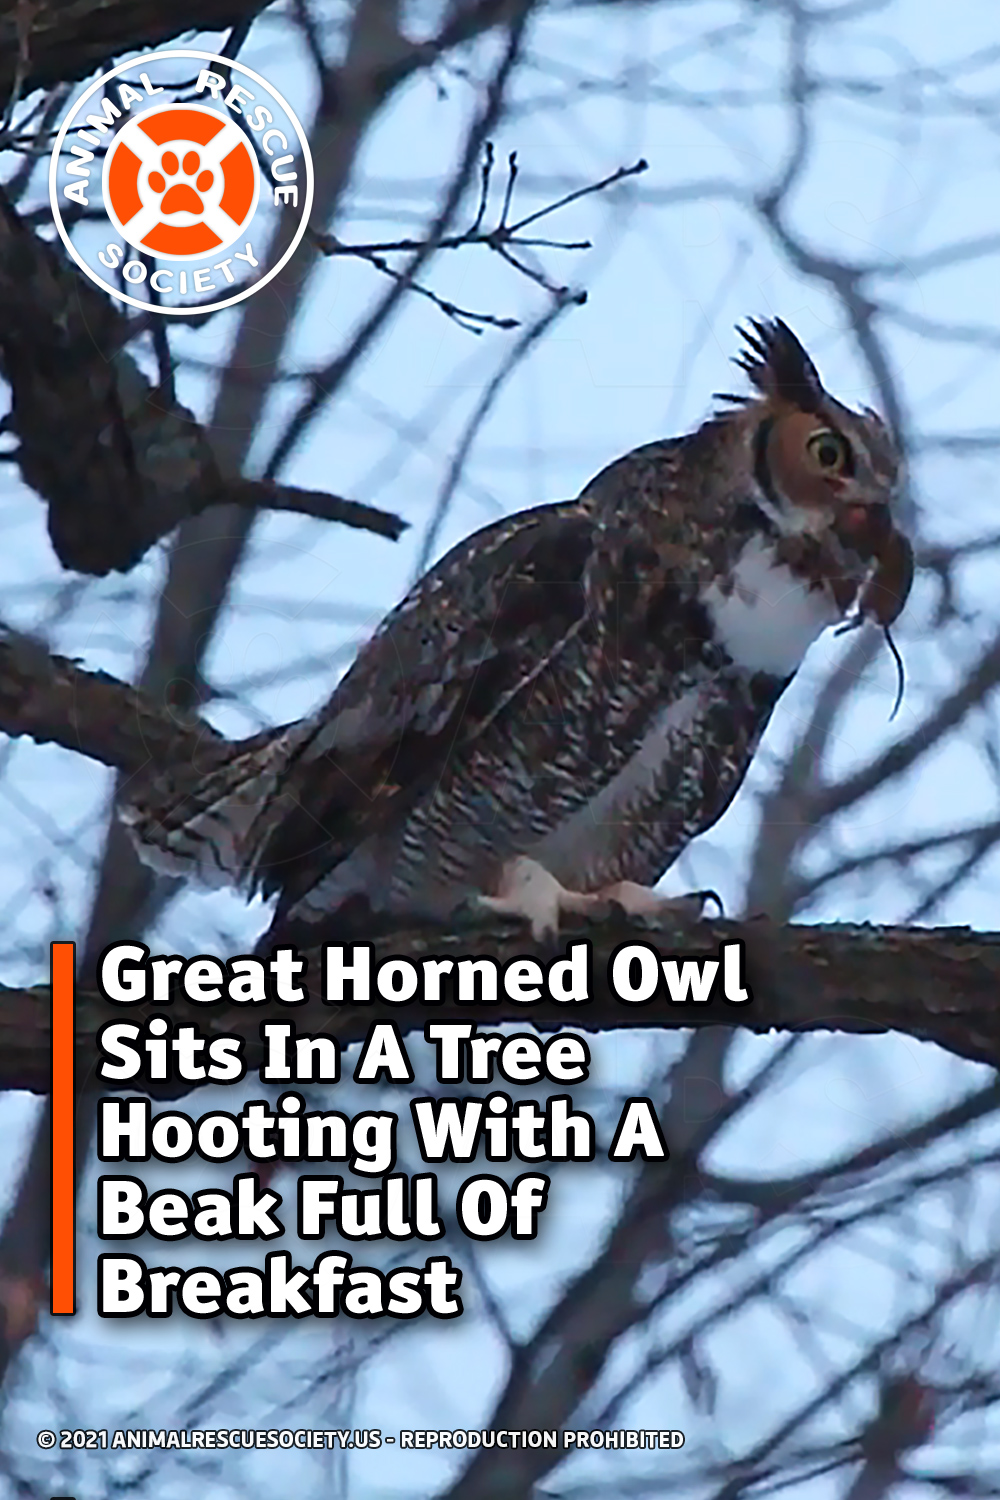 Great Horned Owl Sits In A Tree Hooting With A Beak Full Of Breakfast